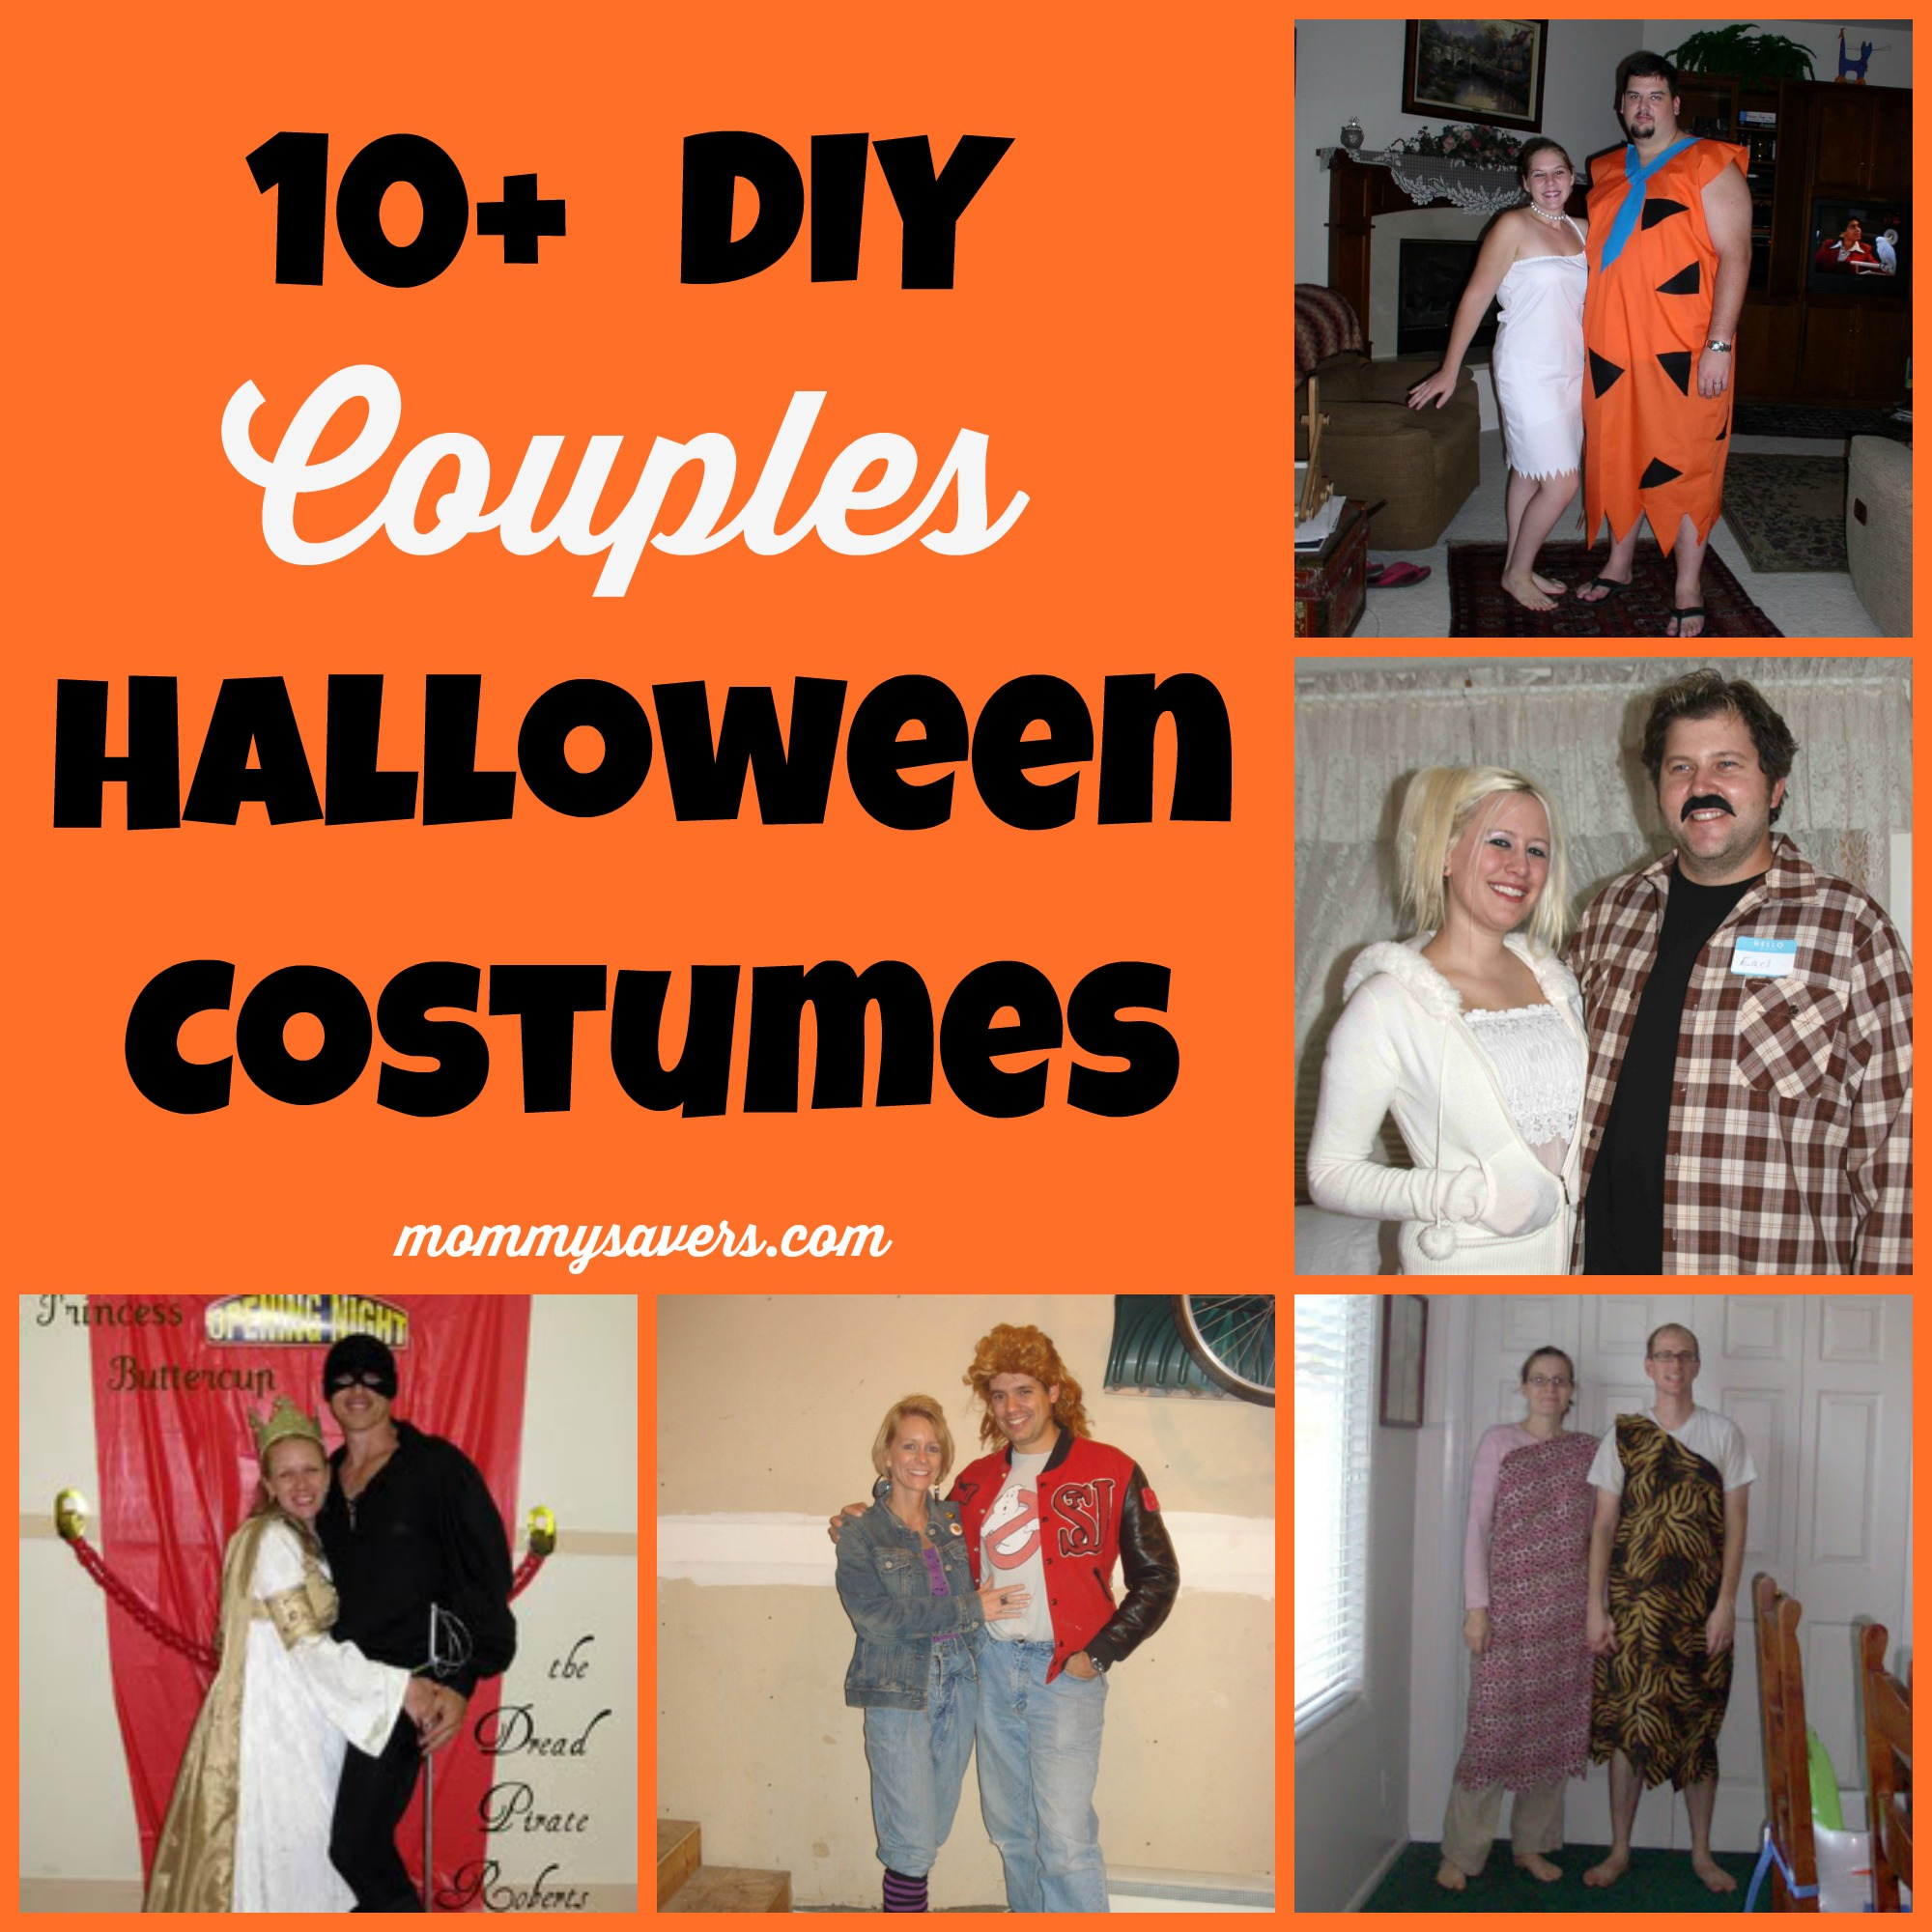 diy couples halloween costumes  sc 1 st  Mommysavers & DIY Couples Halloween Costumes (10+ Ideas) - Mommysavers | Mommysavers